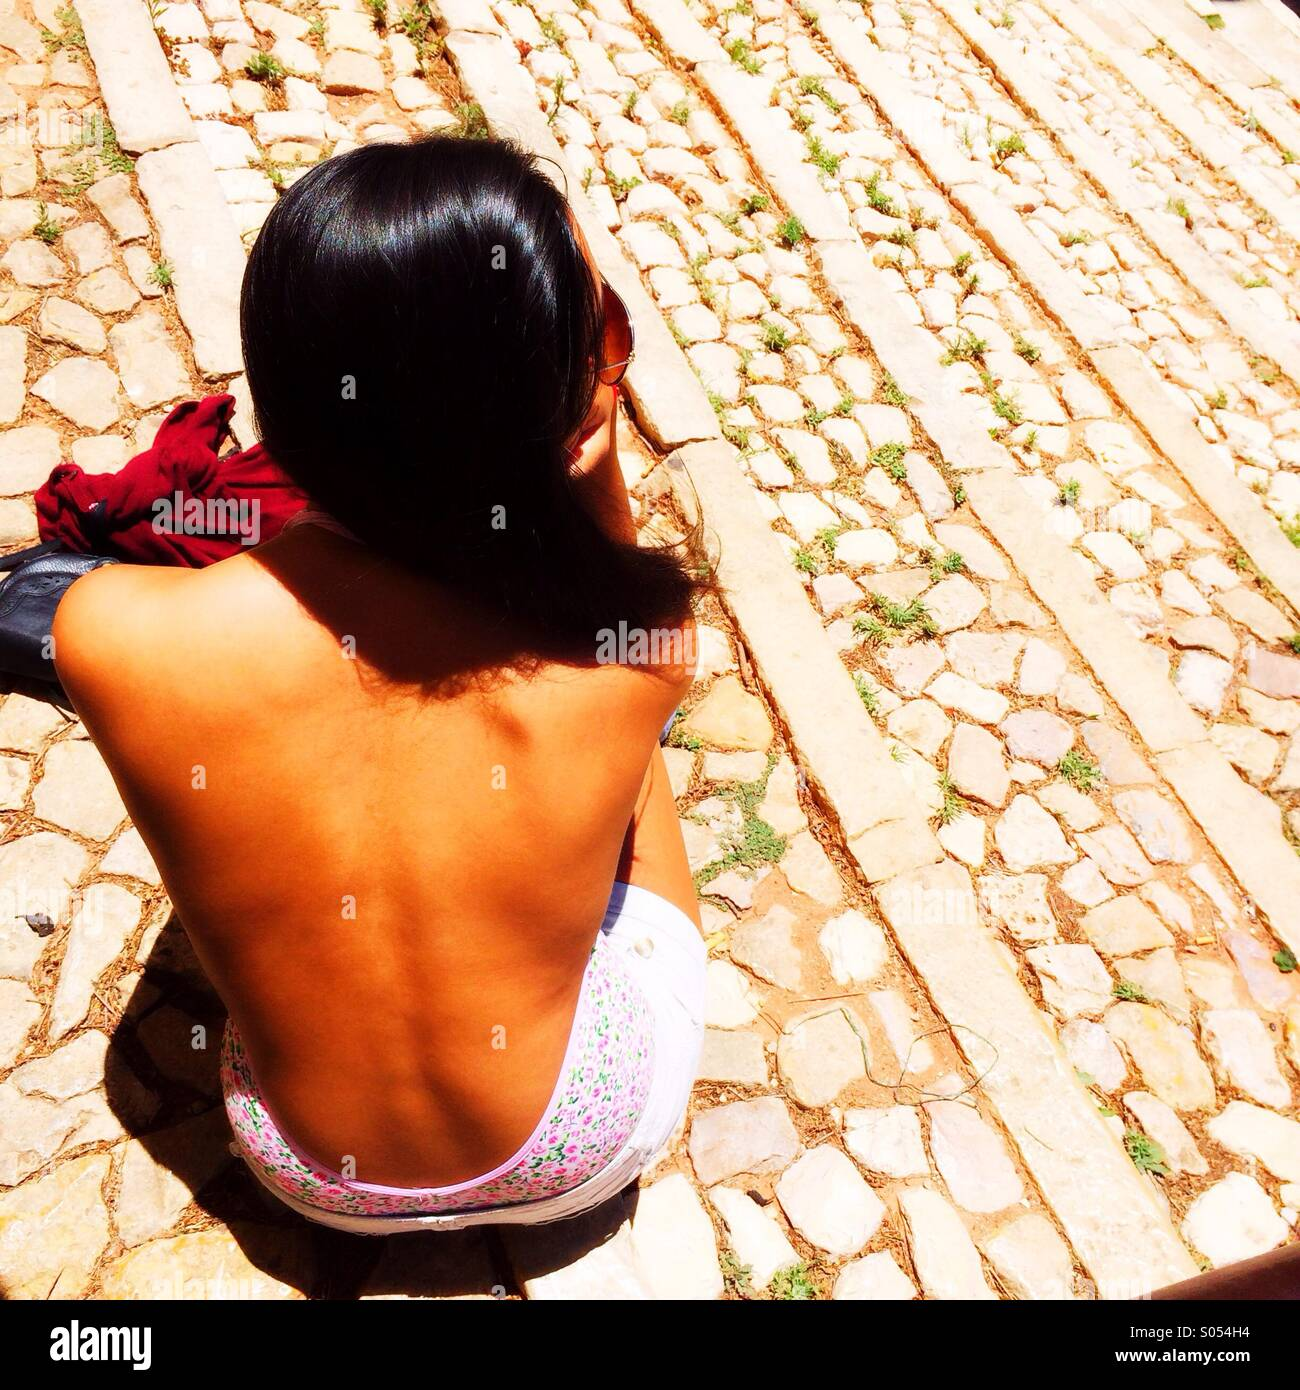 Girl sitting on stone steps, Portugal - Stock Image